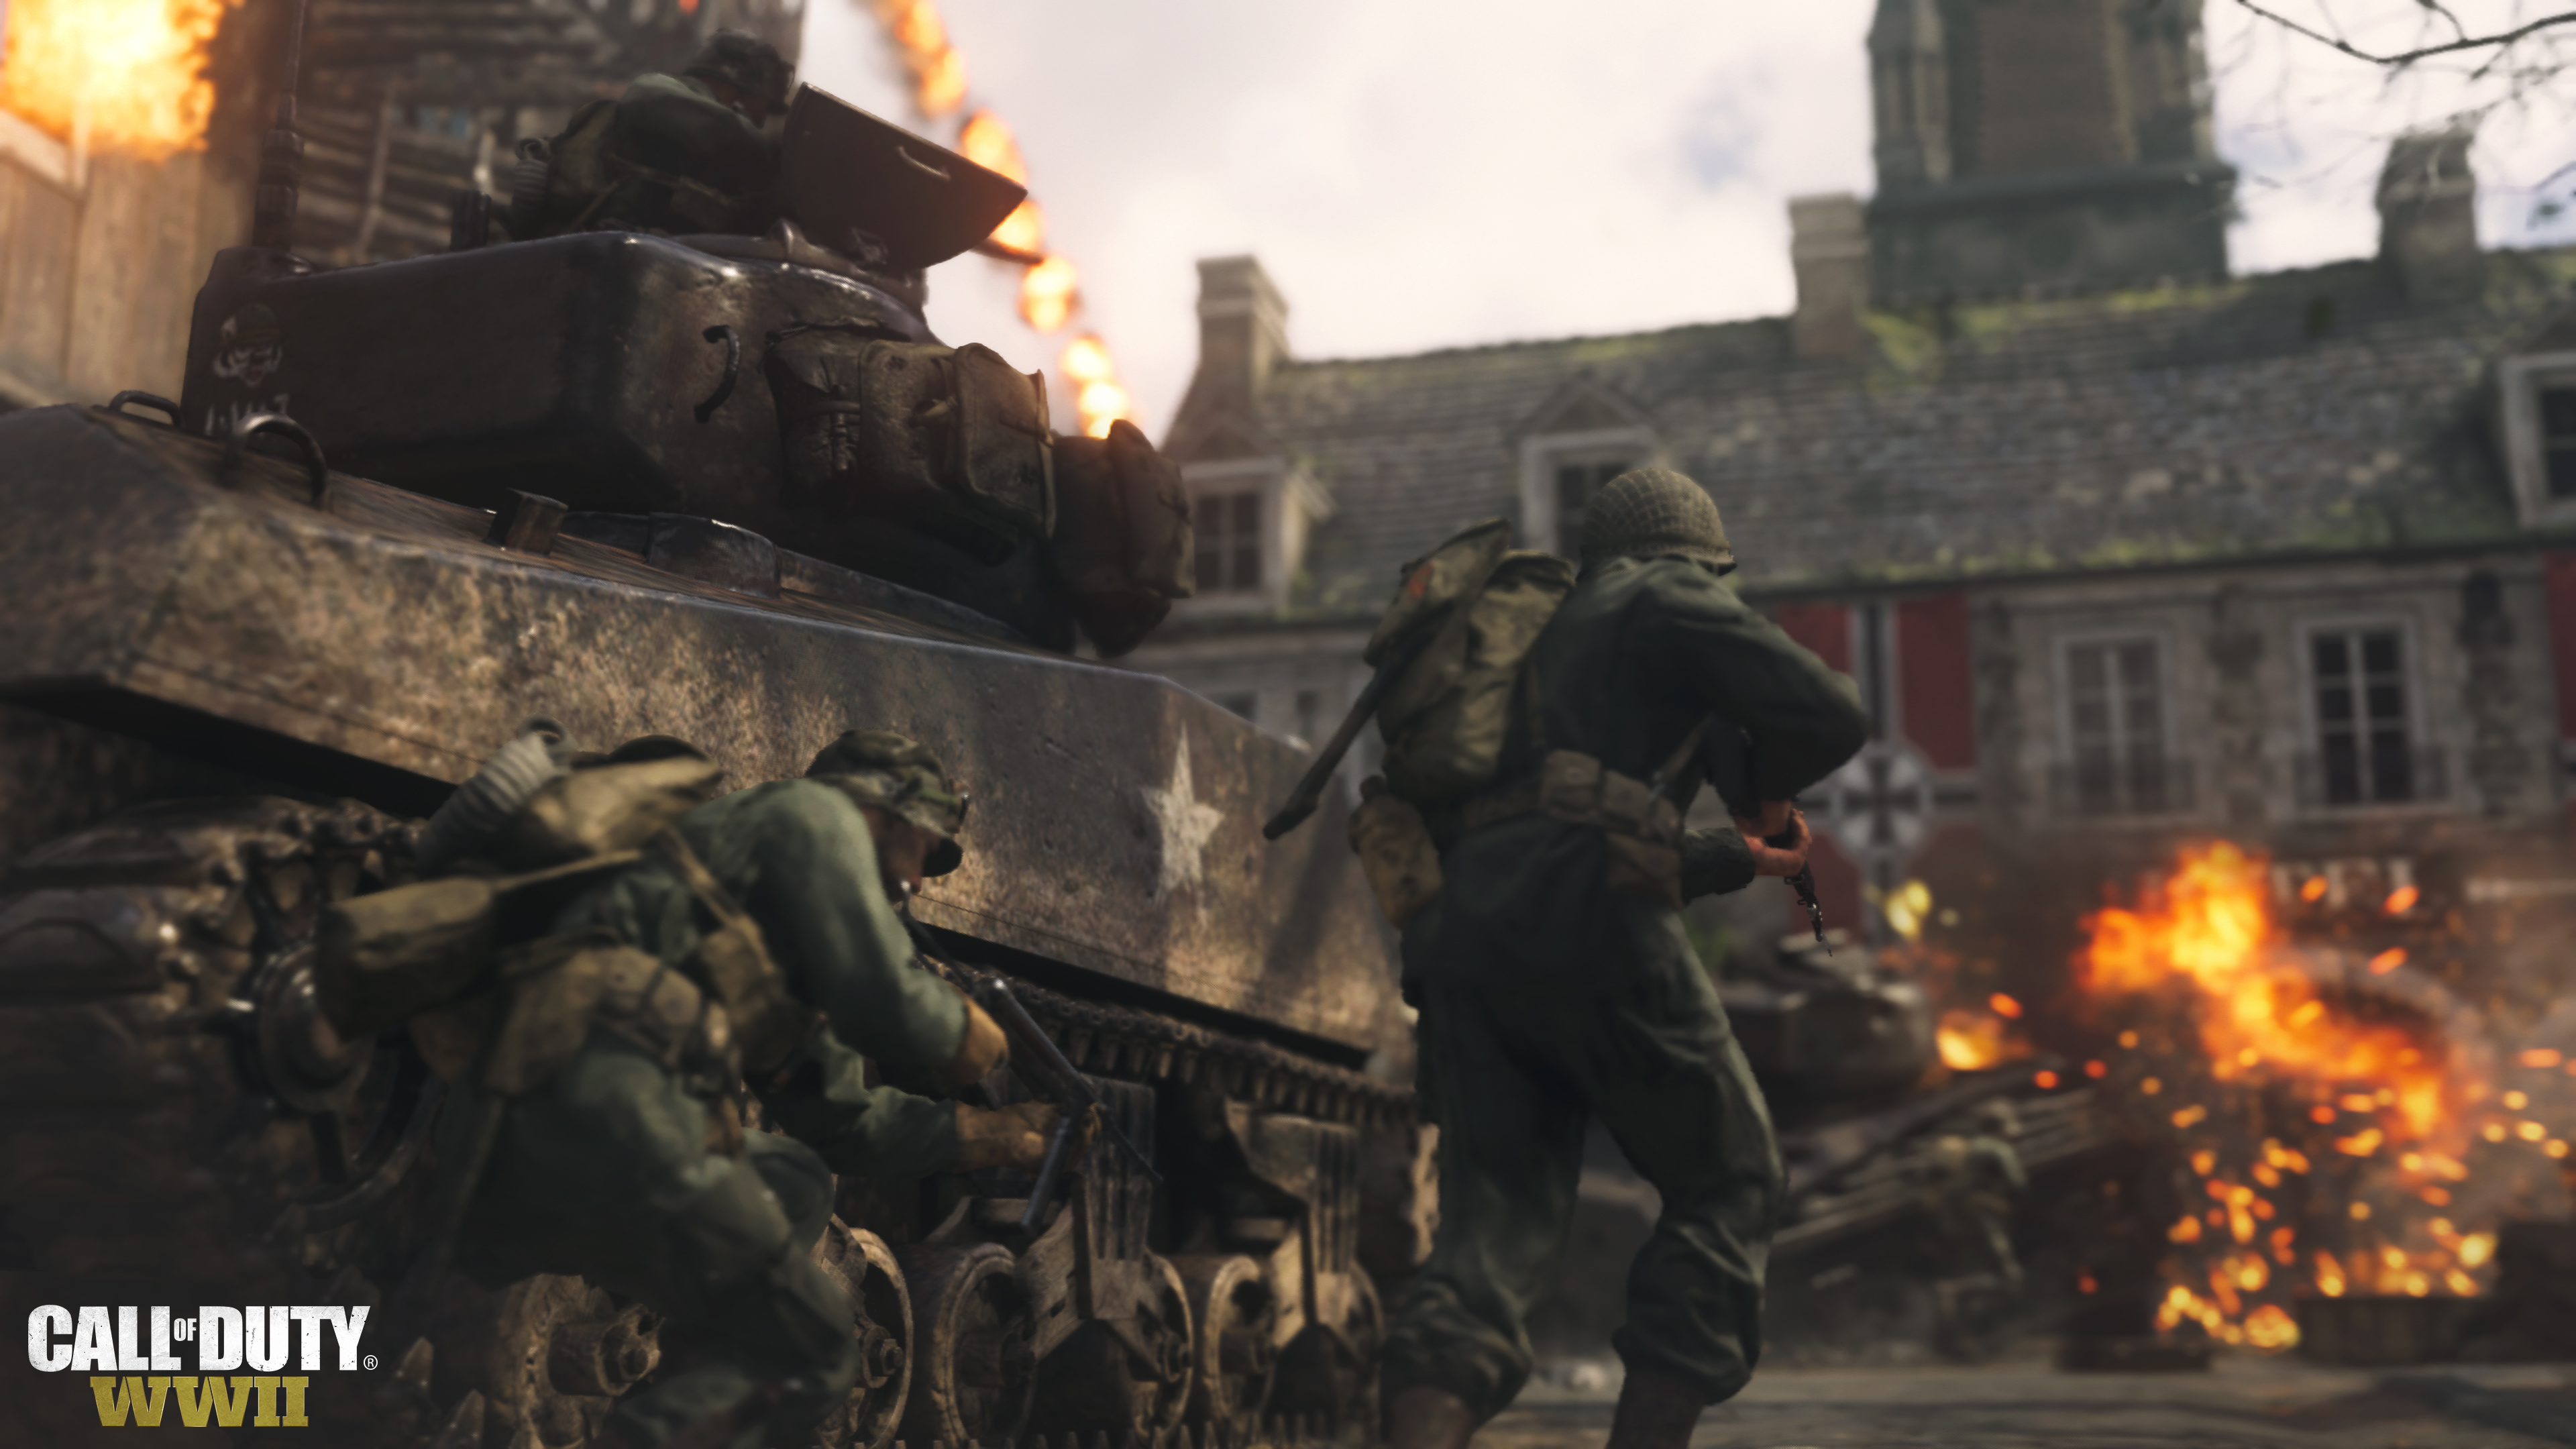 CallofDuty_WWII_E3_Screen_03wm